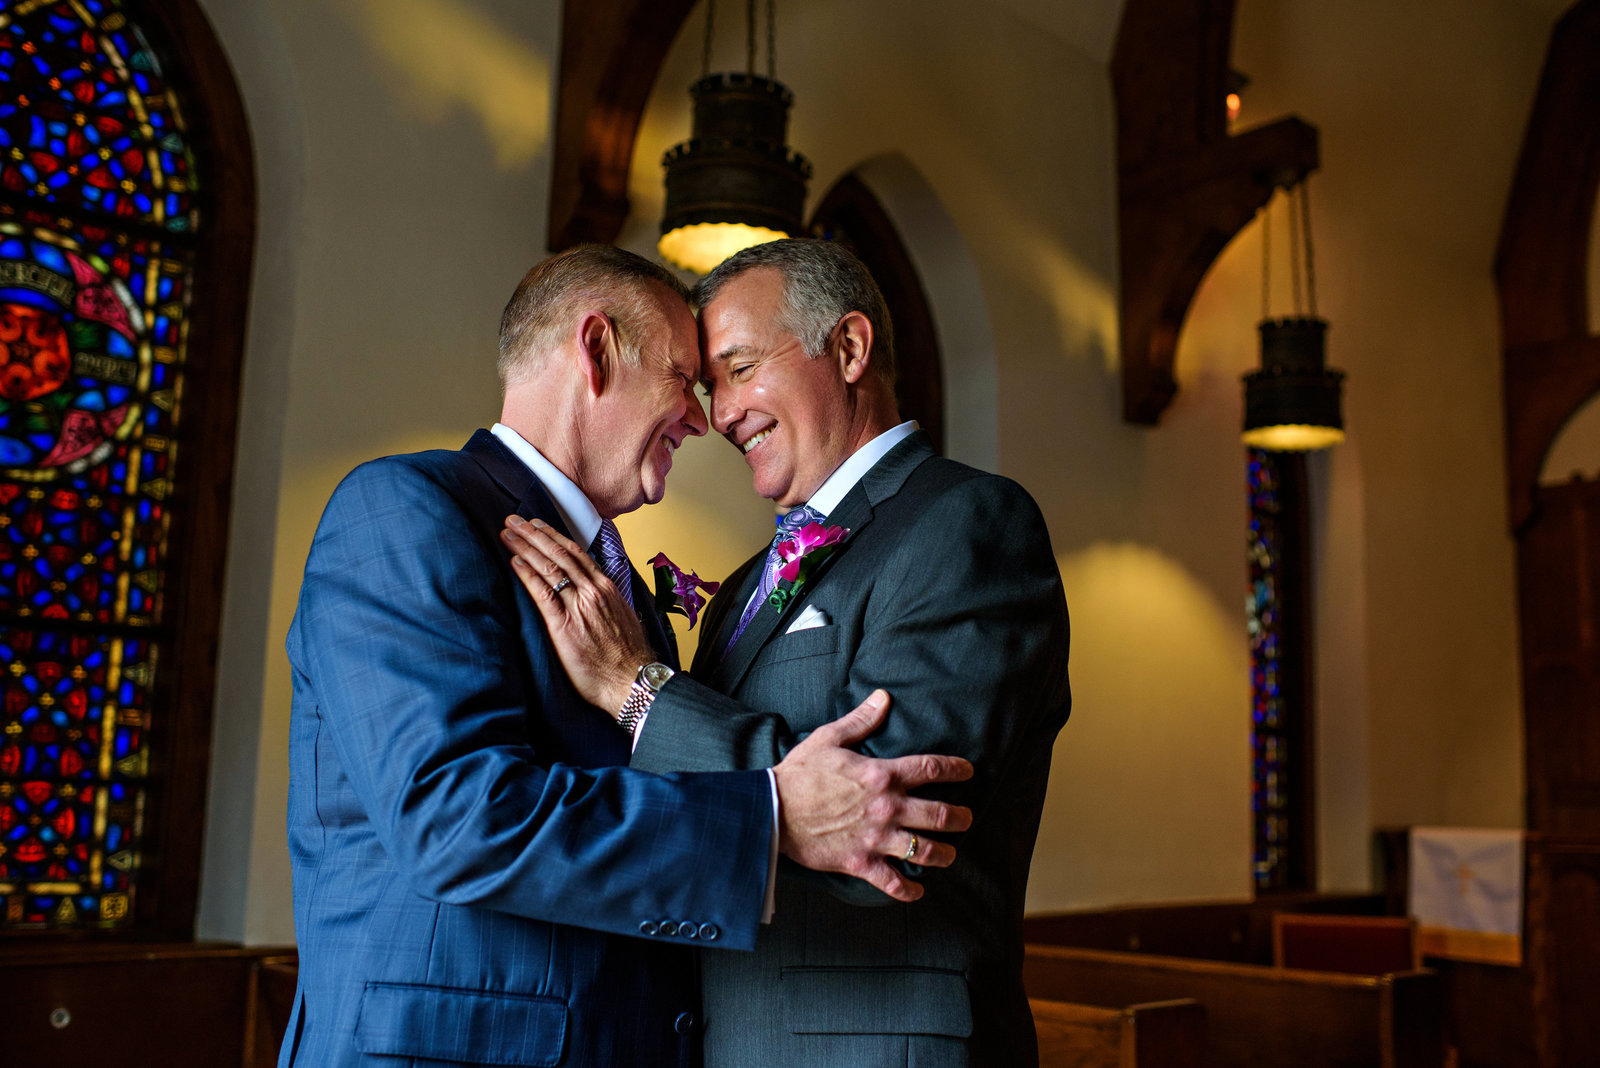 Two grooms share in the excitement of their same sex wedding.